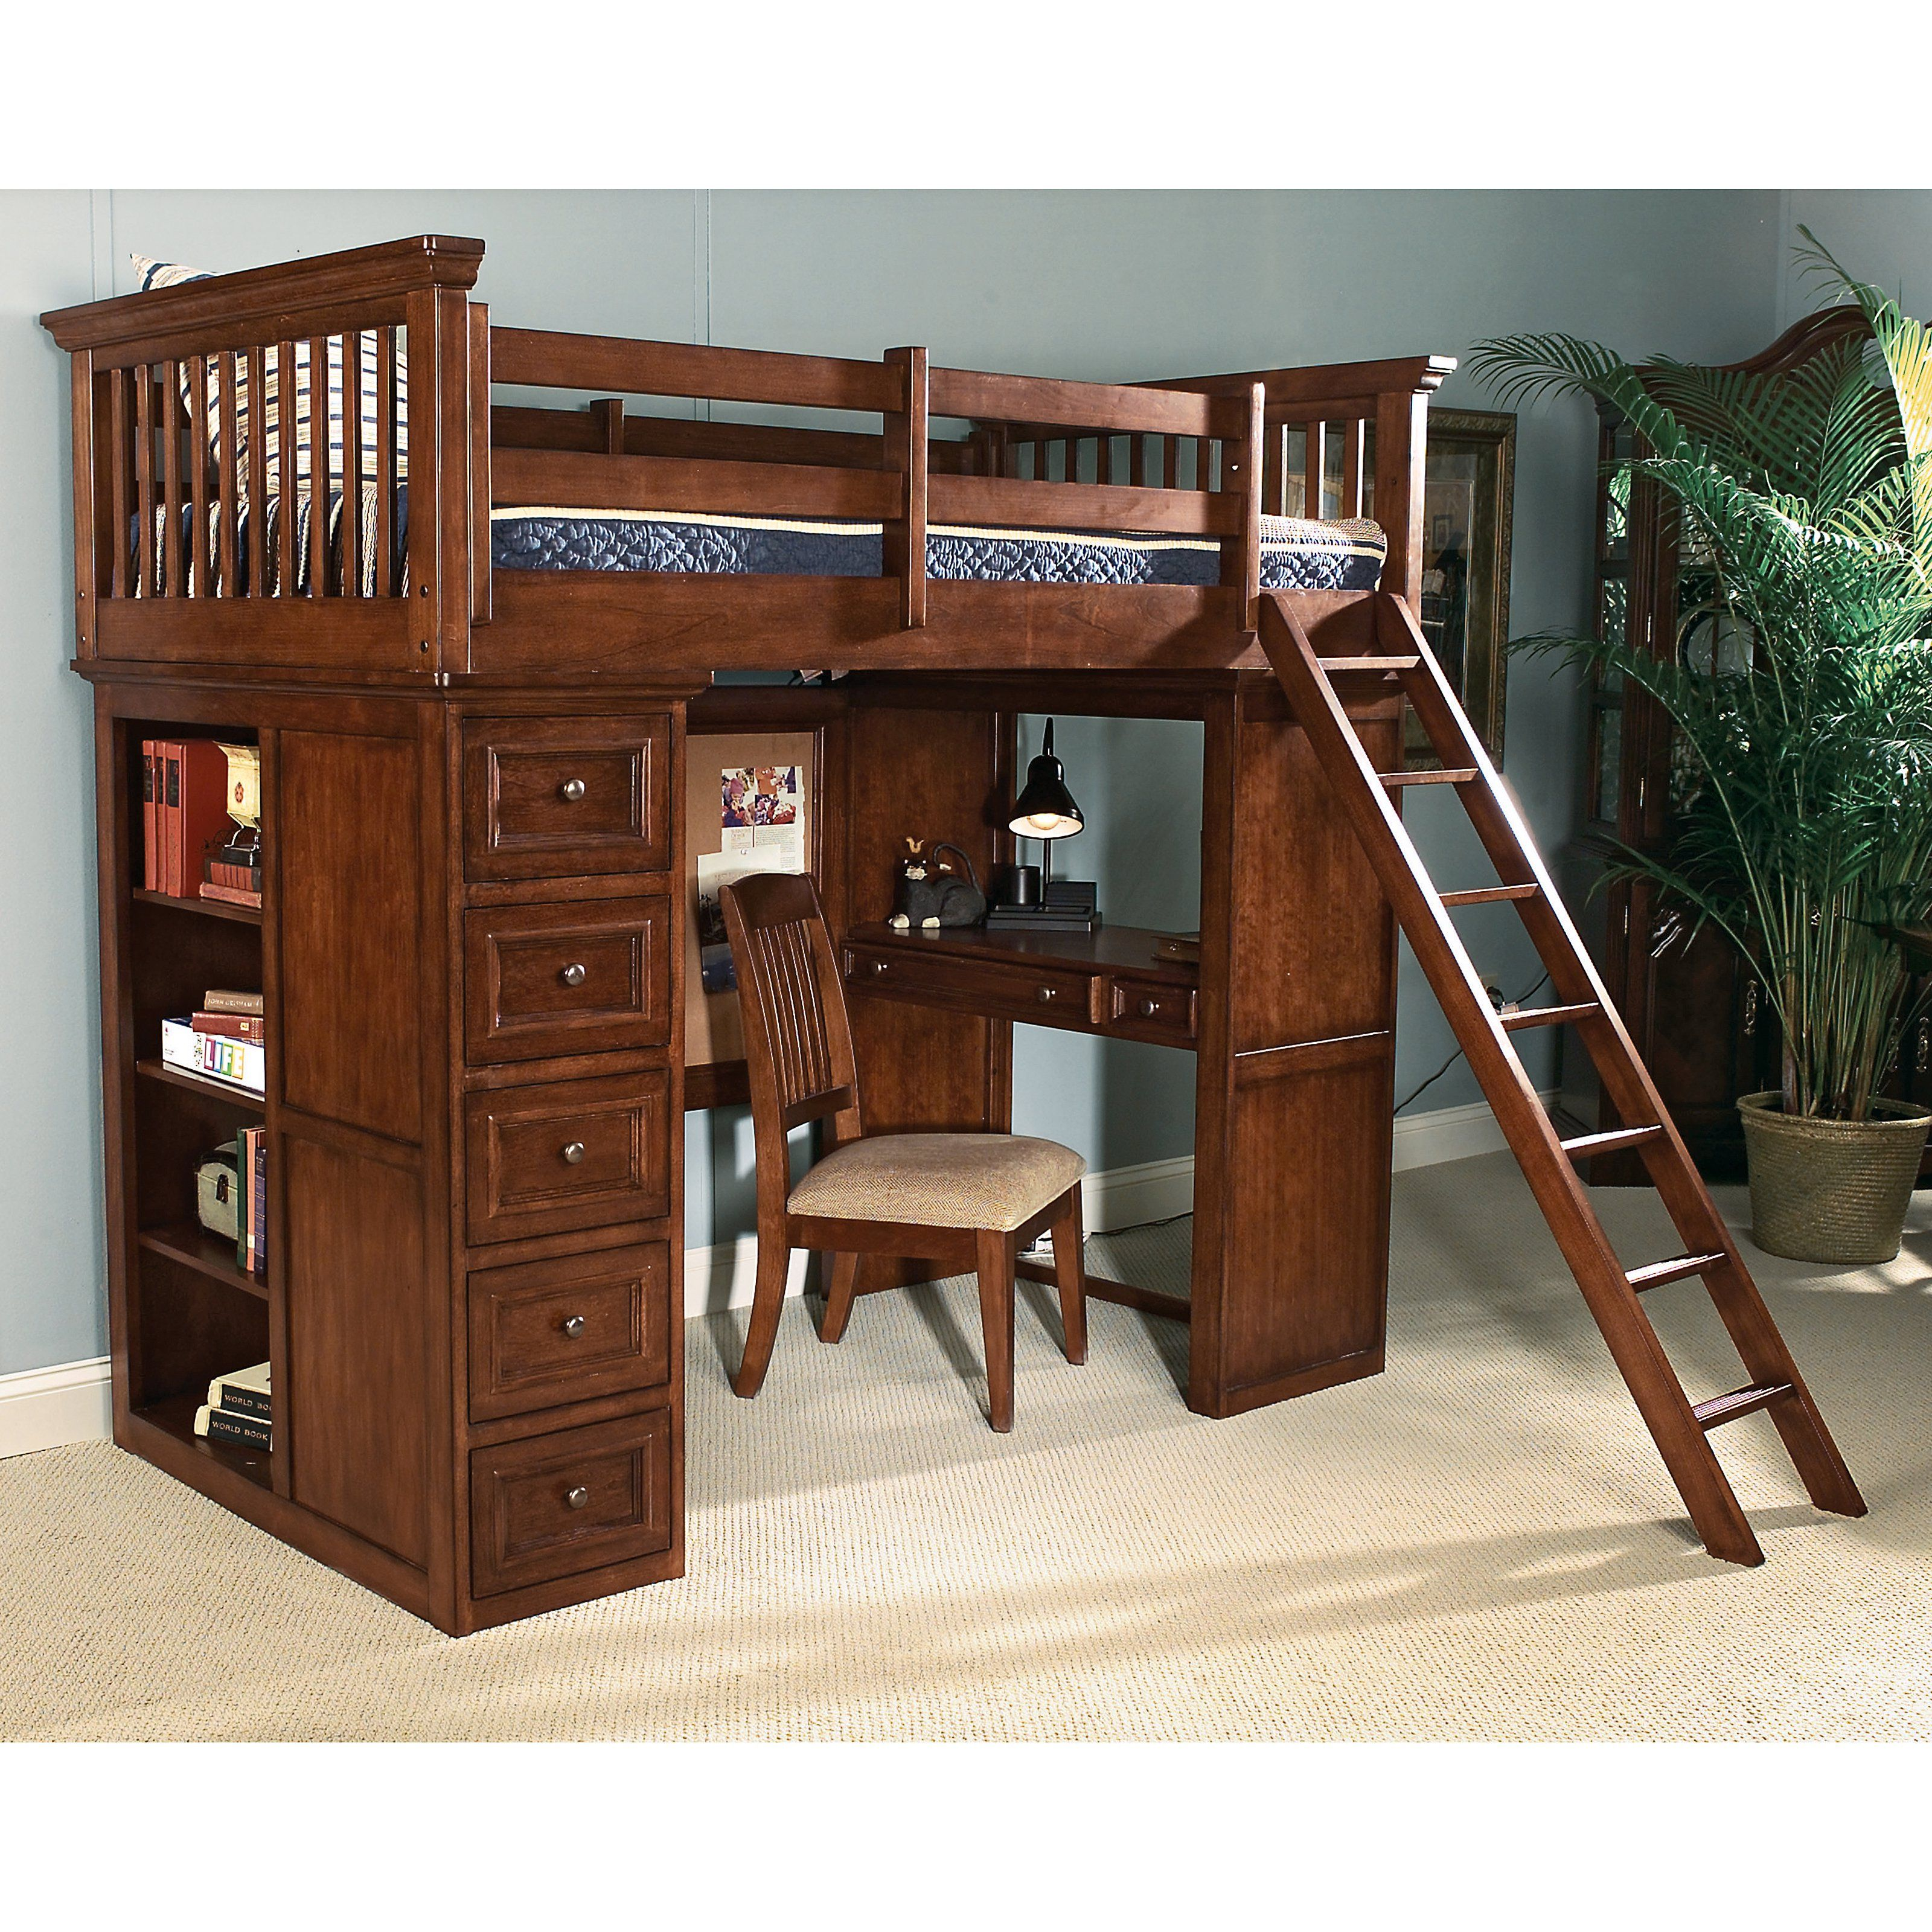 Bunk Bed with Desk with storage and ladder